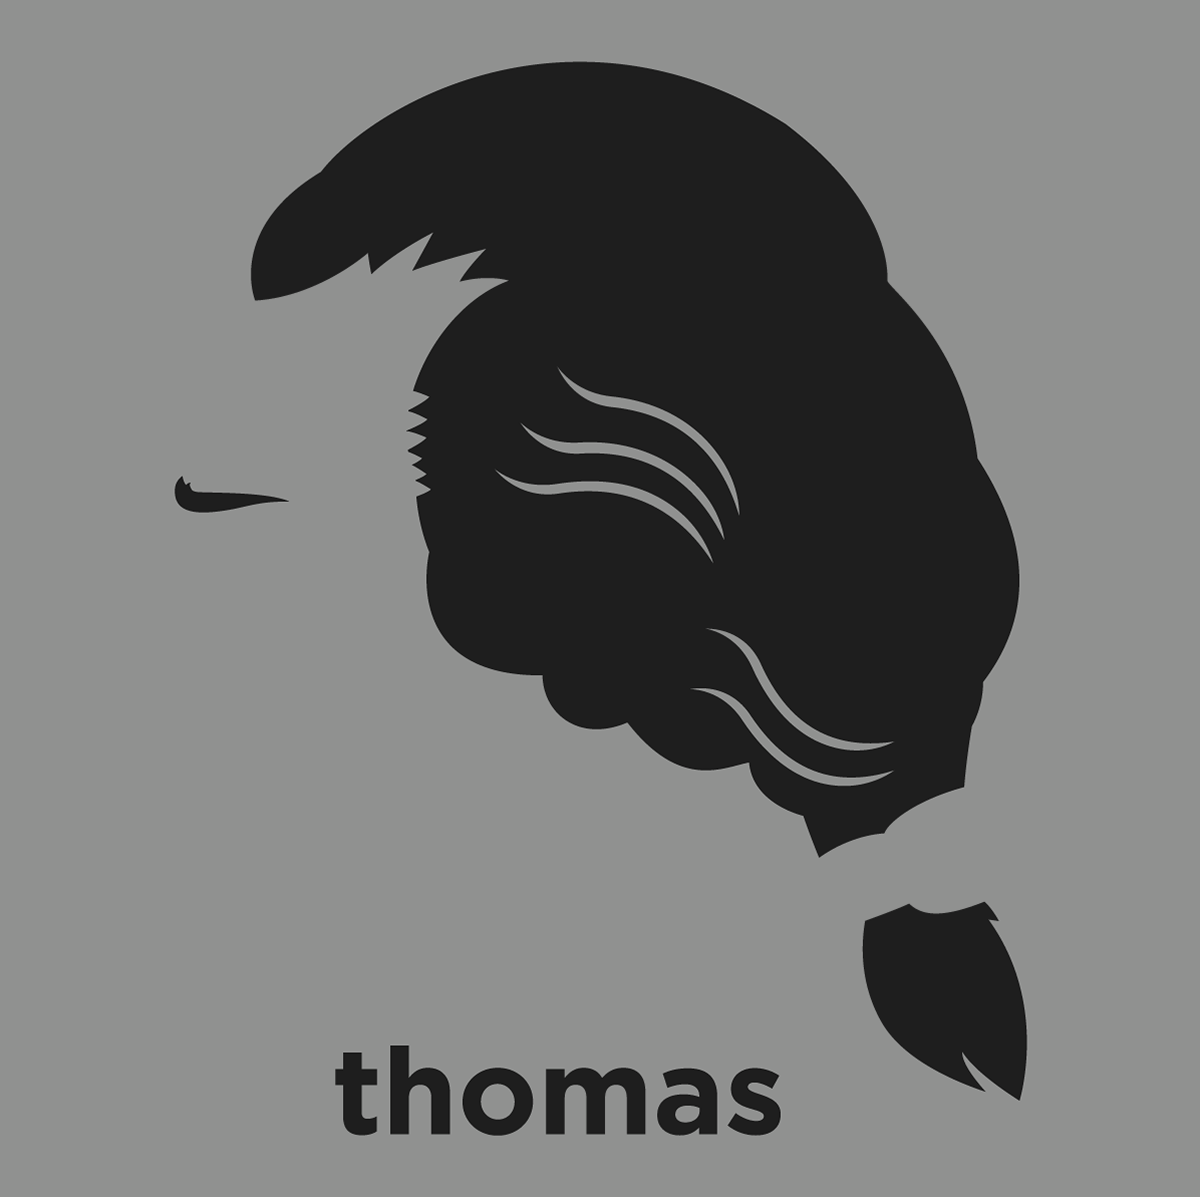 small resolution of a t shirt with a minimalist hair based illustration of thomas jefferson american founding father the principal author of the declaration of independence